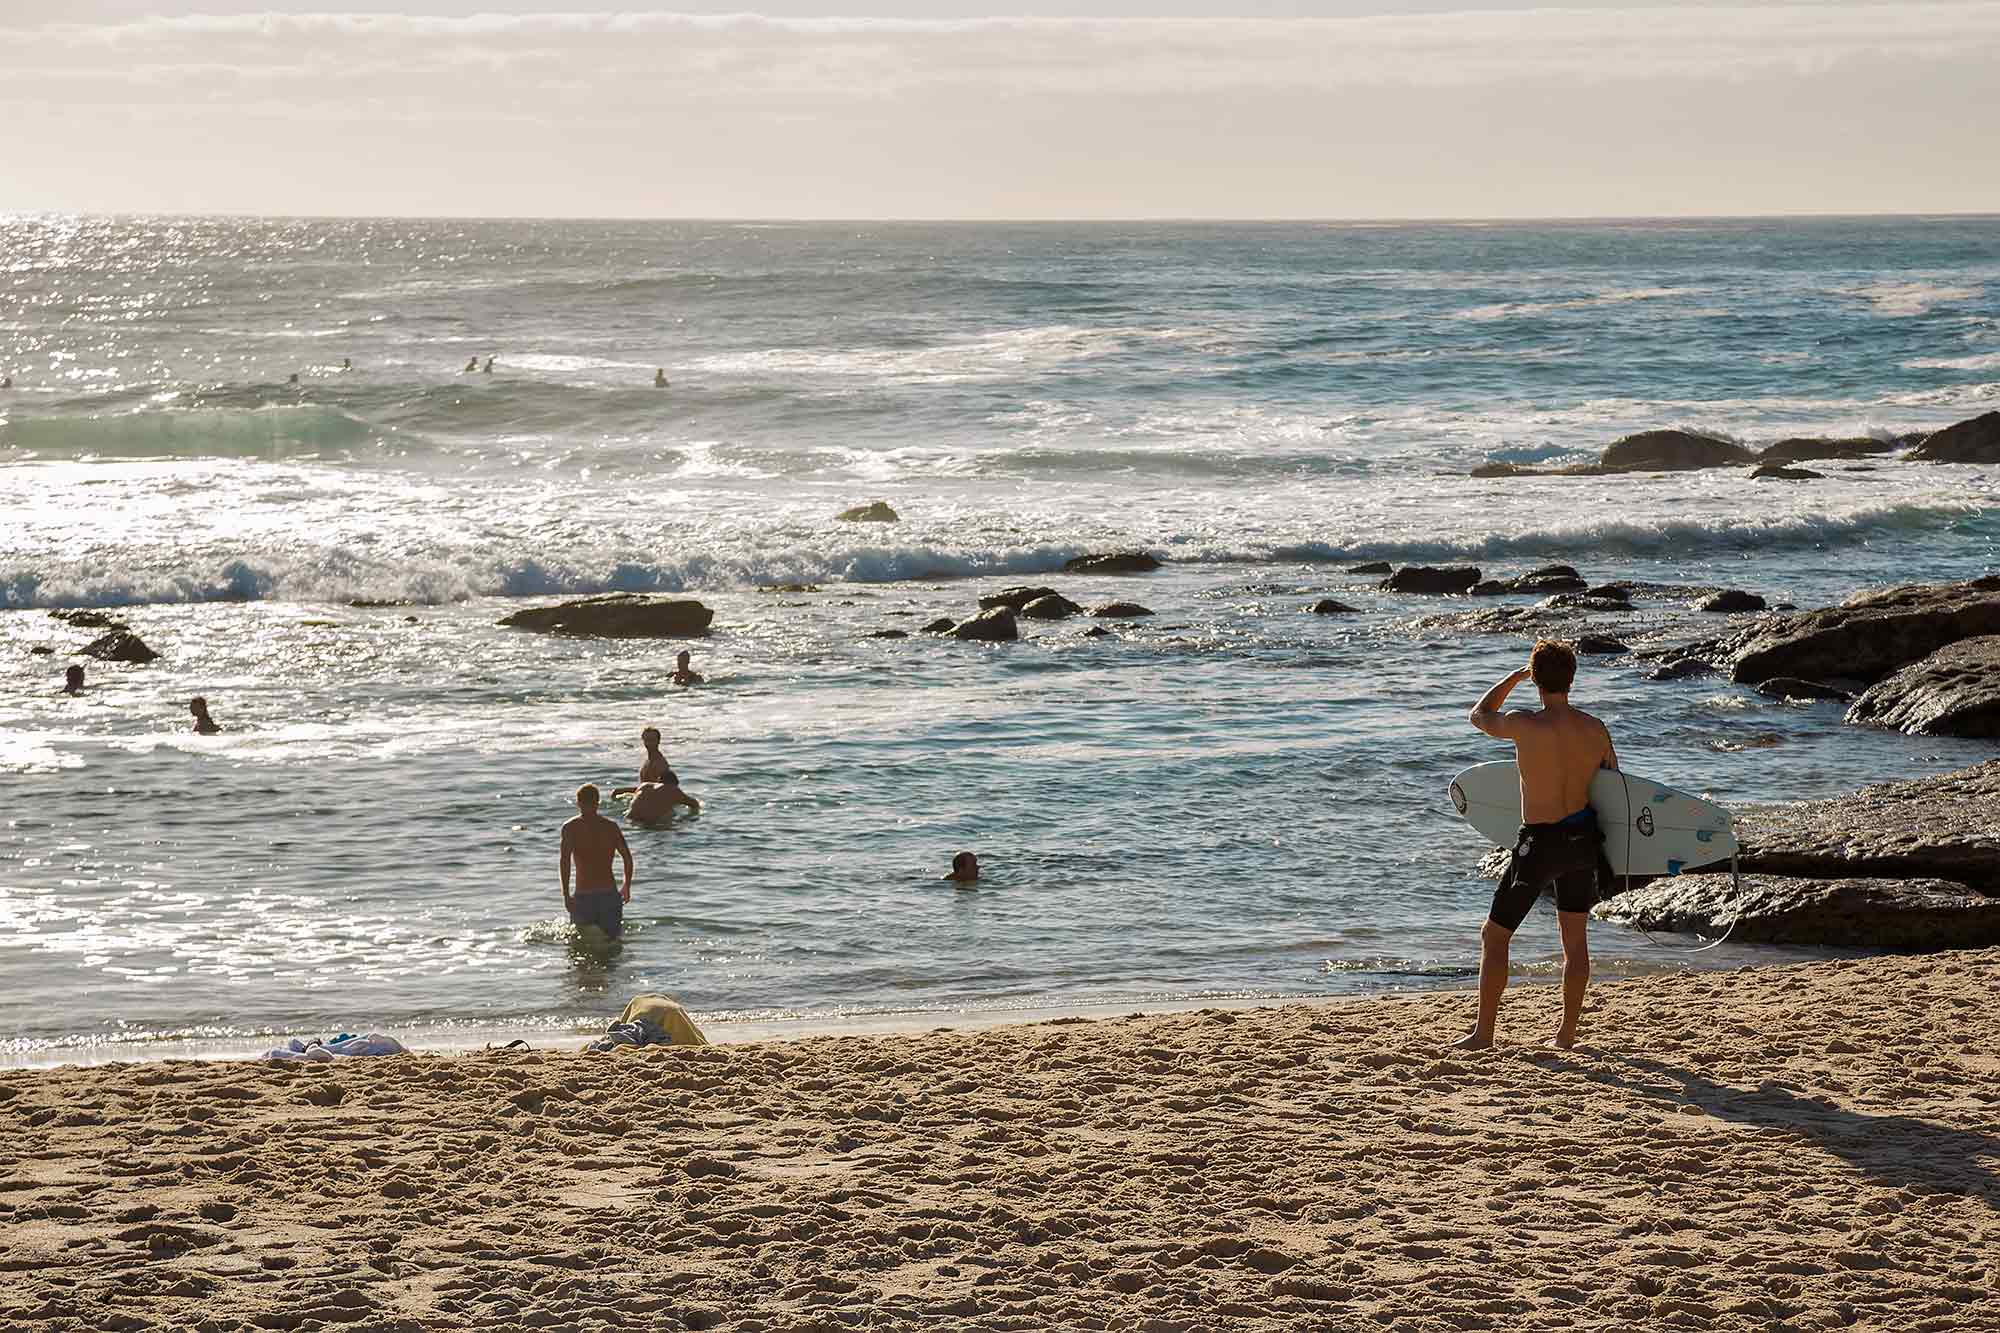 Sydney Coastal Walk: Surfer at Bronte Beach. © Ulli Maier & Nisa Maier